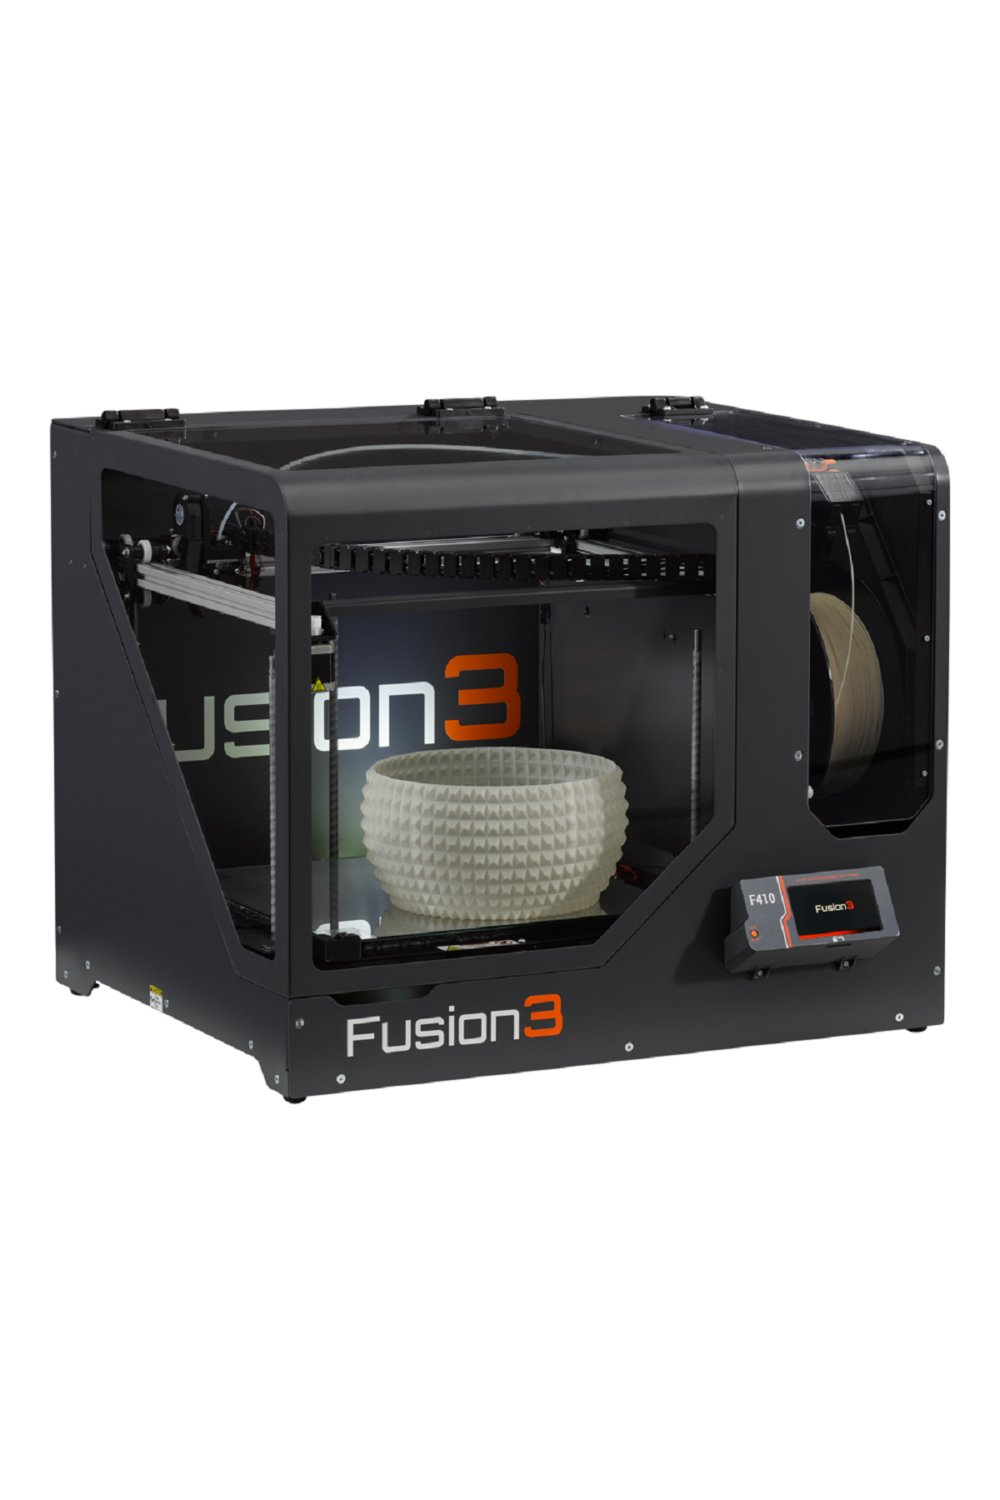 This printer offers competitive printing speeds of 250 mm per second.